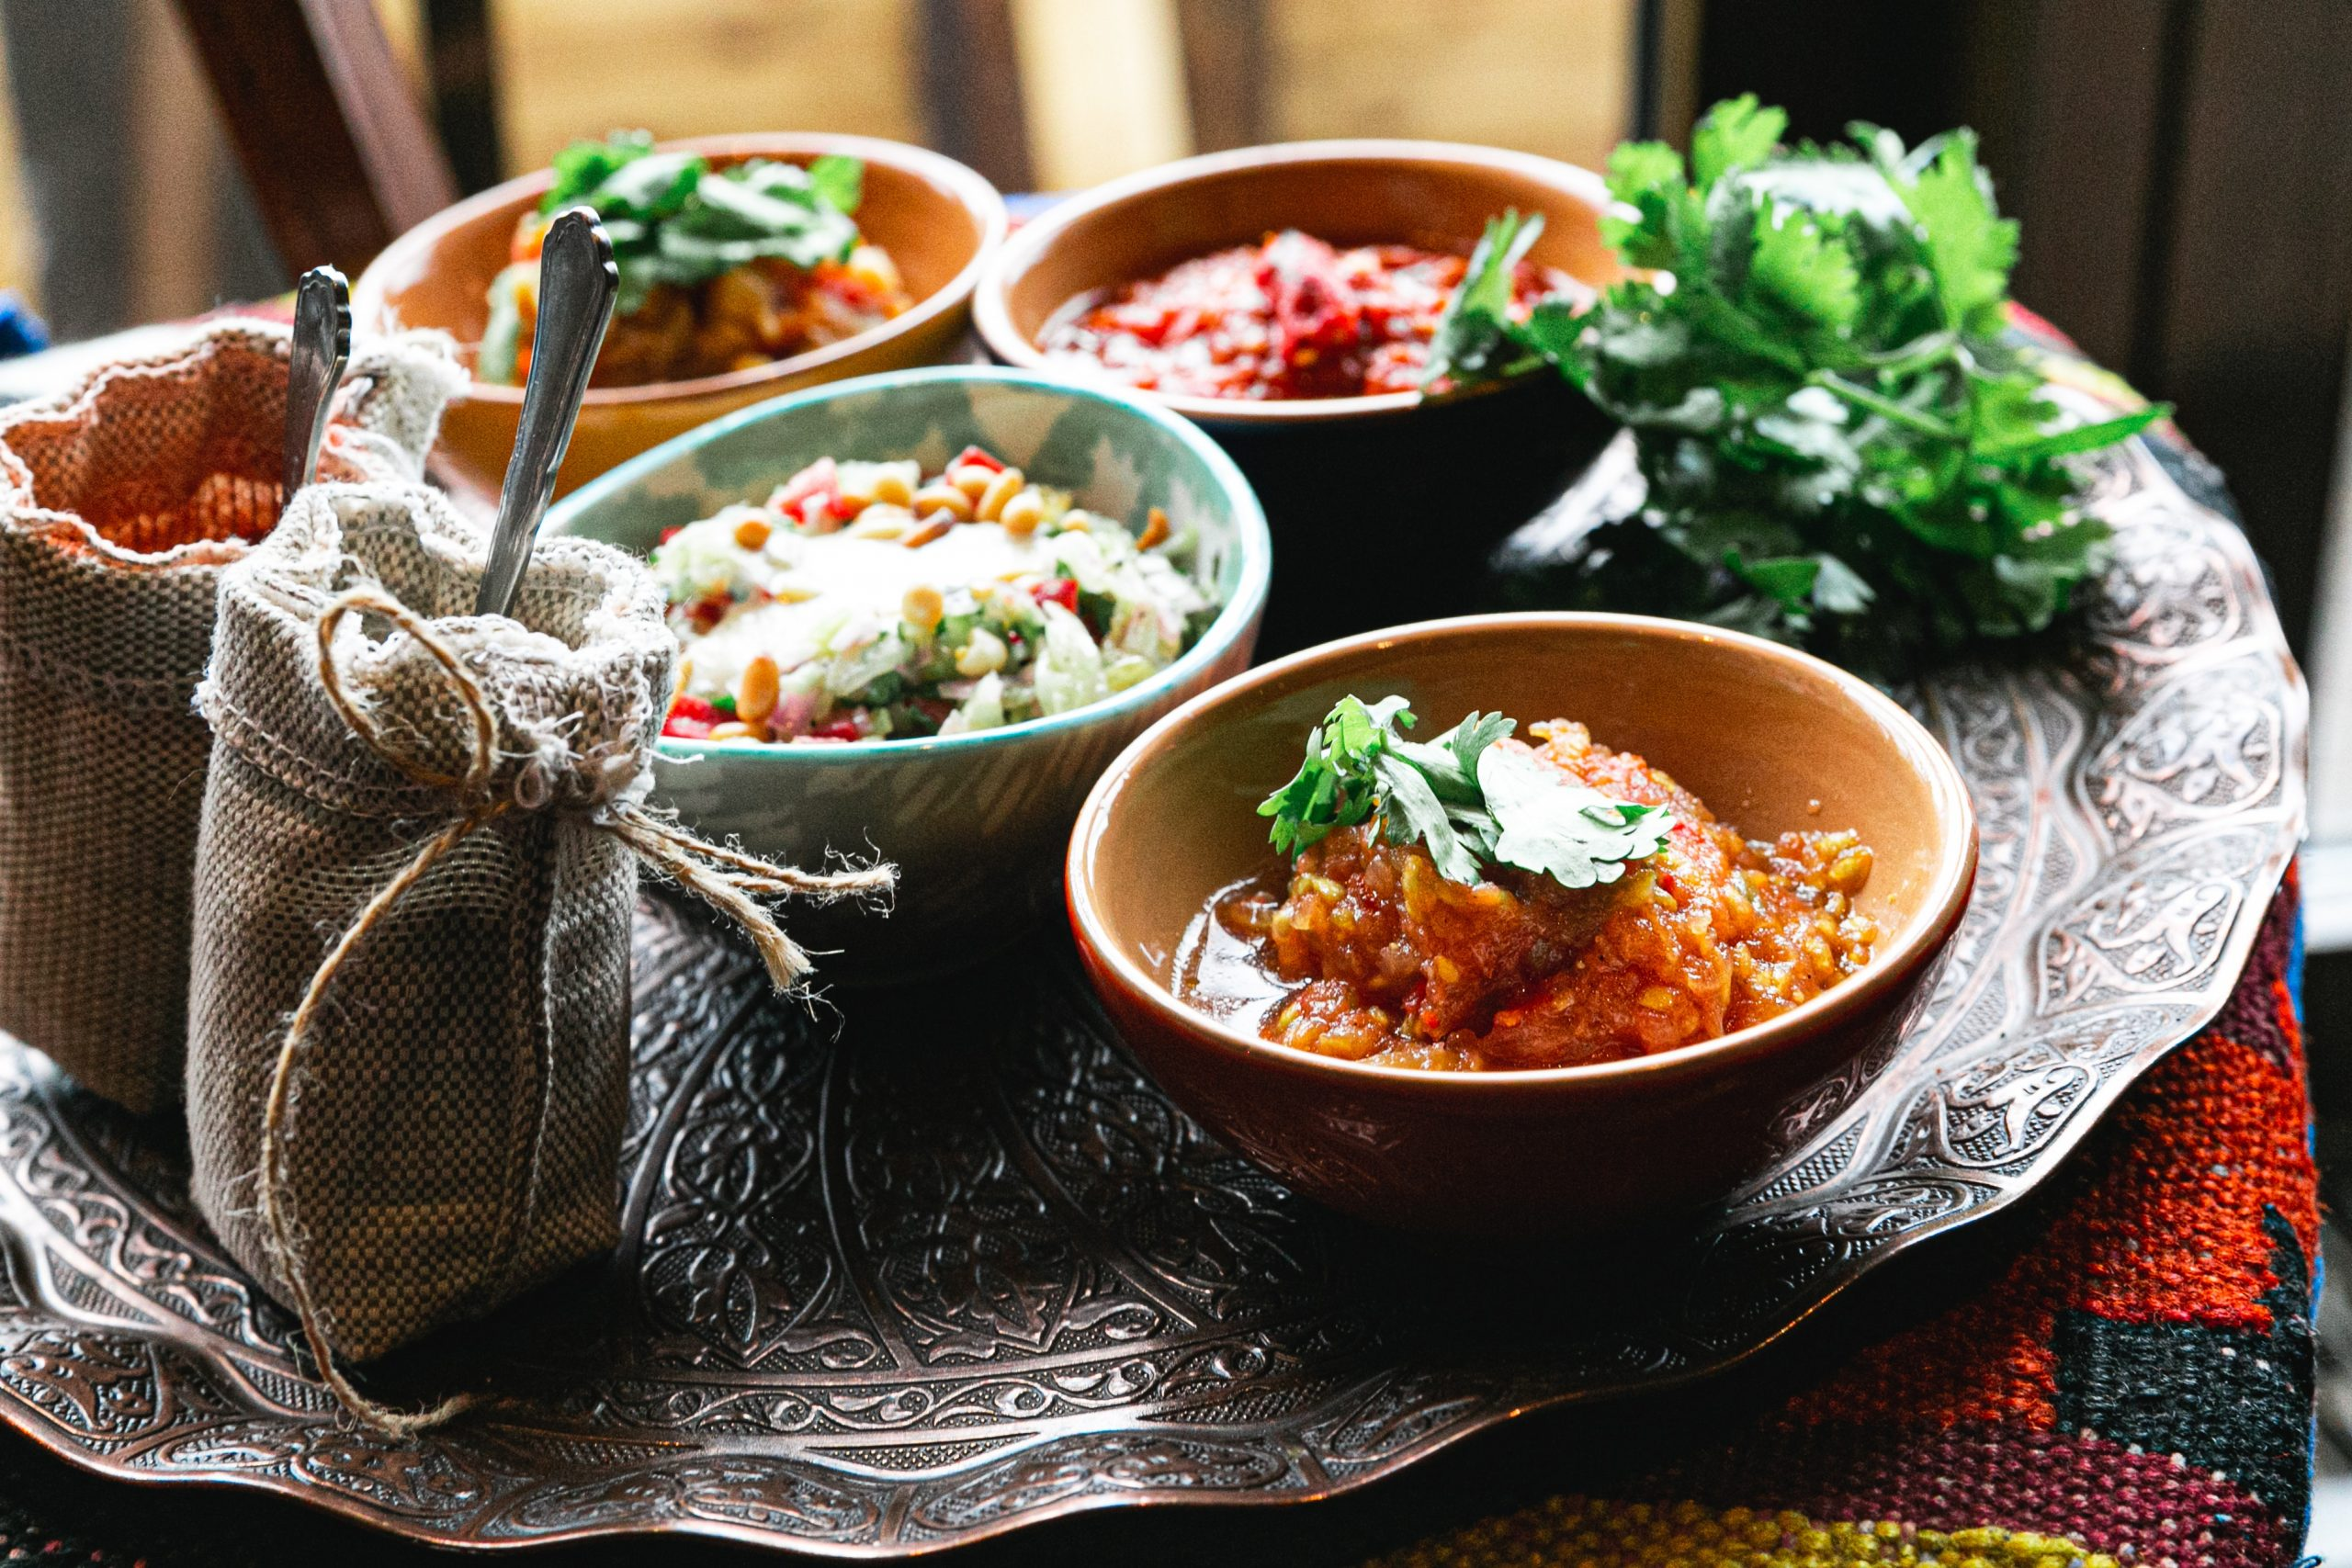 spicy food help you lose weight